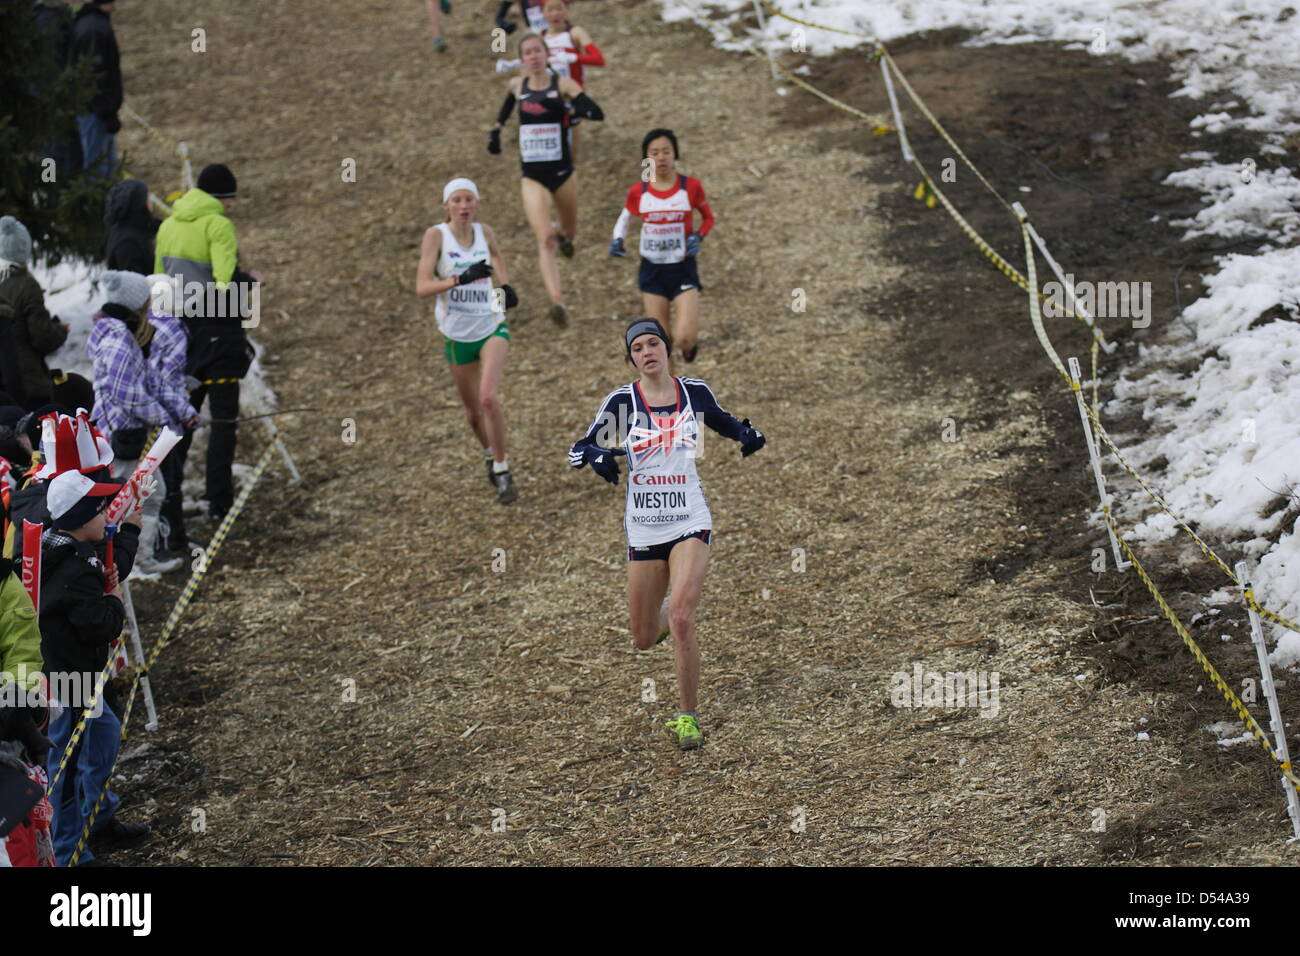 Bydgoszcz, Poland 24th, March 2013 IAAF World Cross Country Chamiponships. Junior Race Woman. Pictured: Rebecca - Stock Image